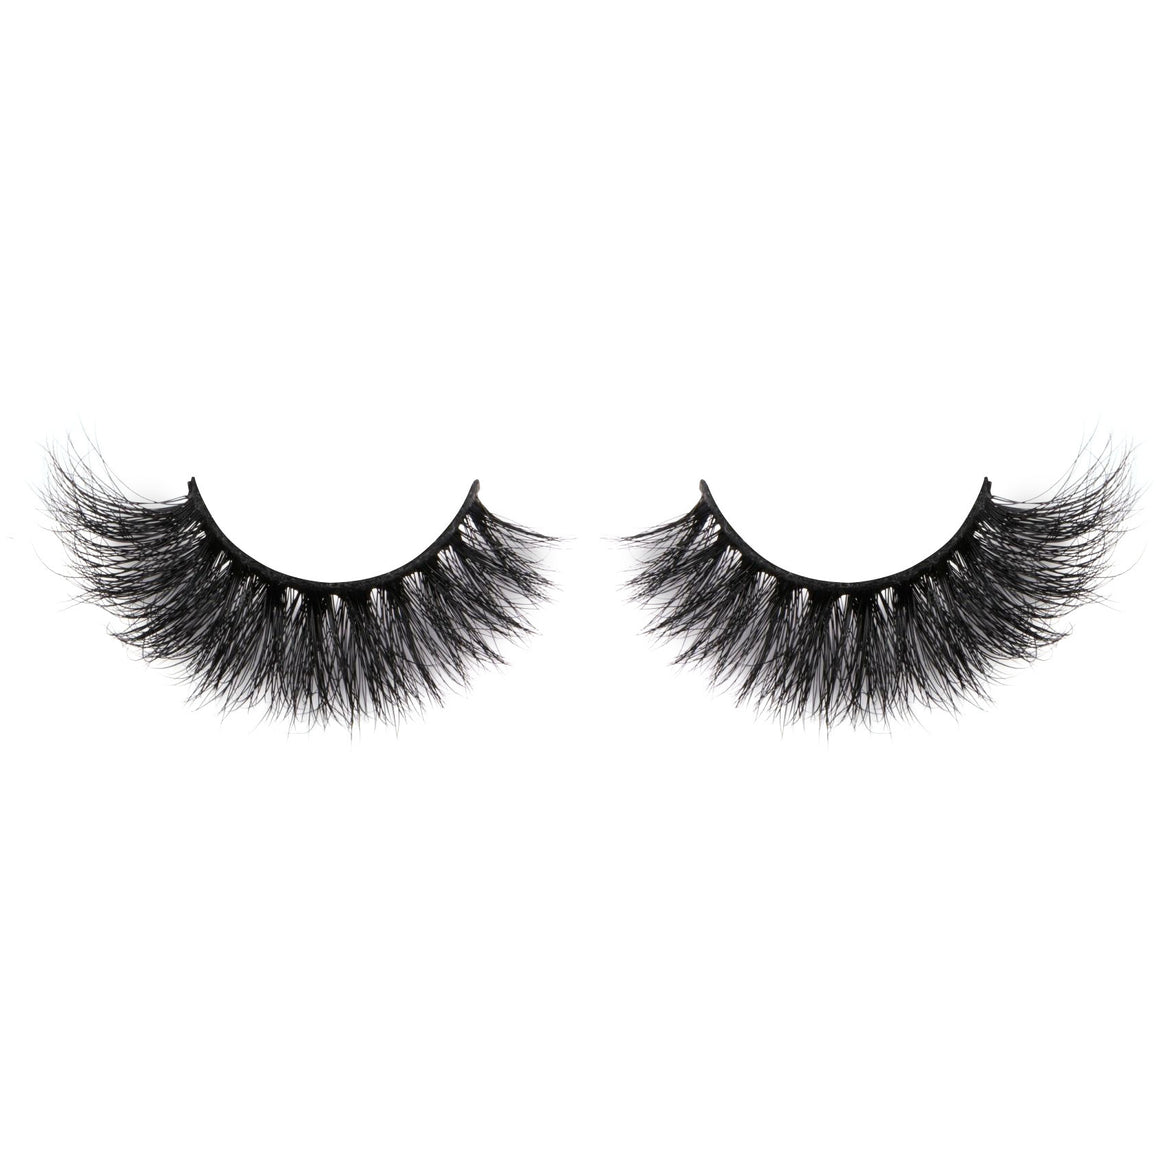 Chloe Mink Lash - Best 3D Mink Eye Lashes - Women's Cosmetic Online